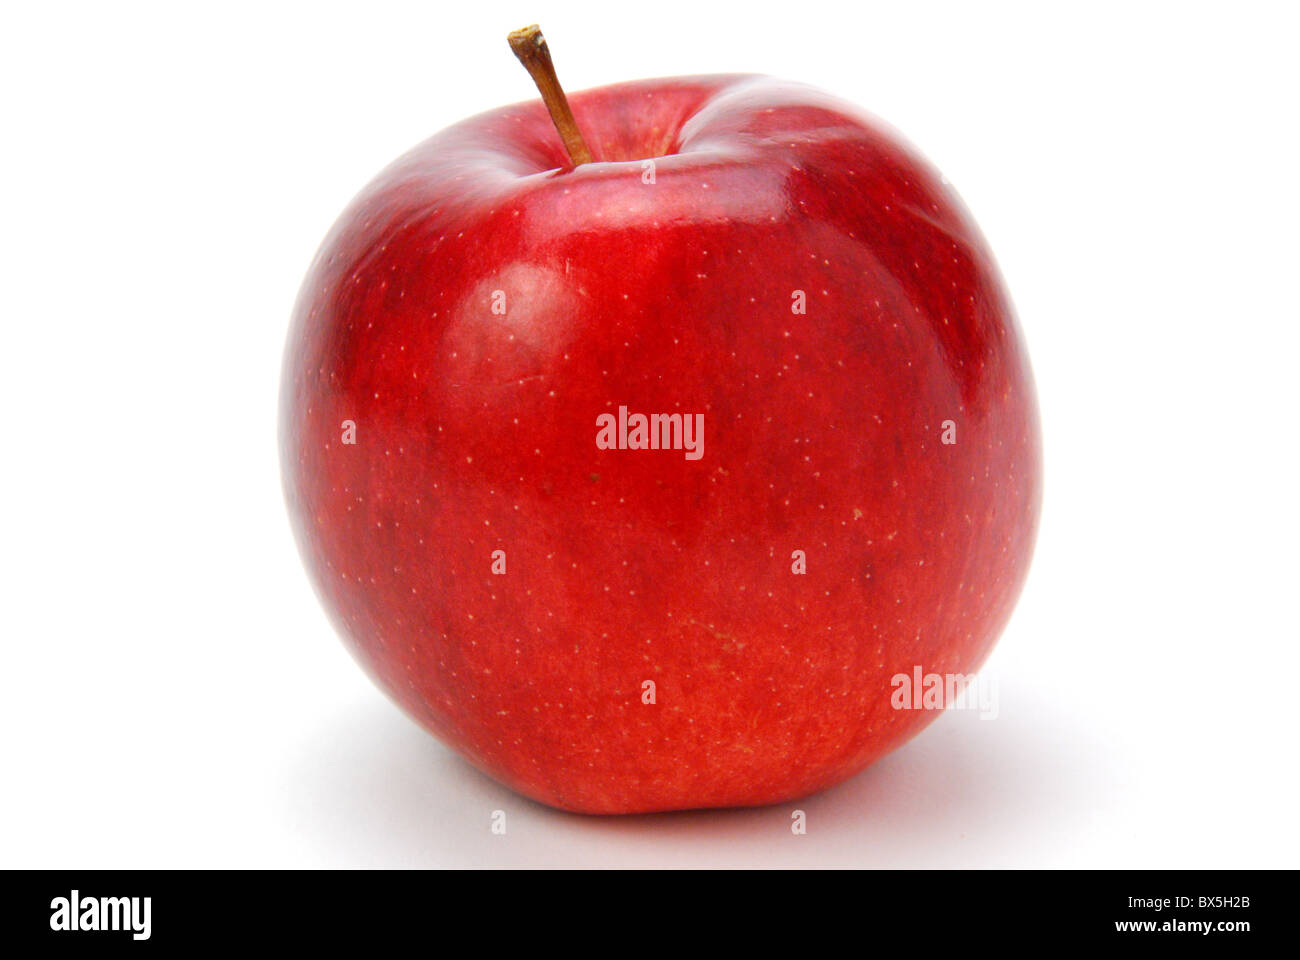 SINGLE RED APPLE - Stock Image